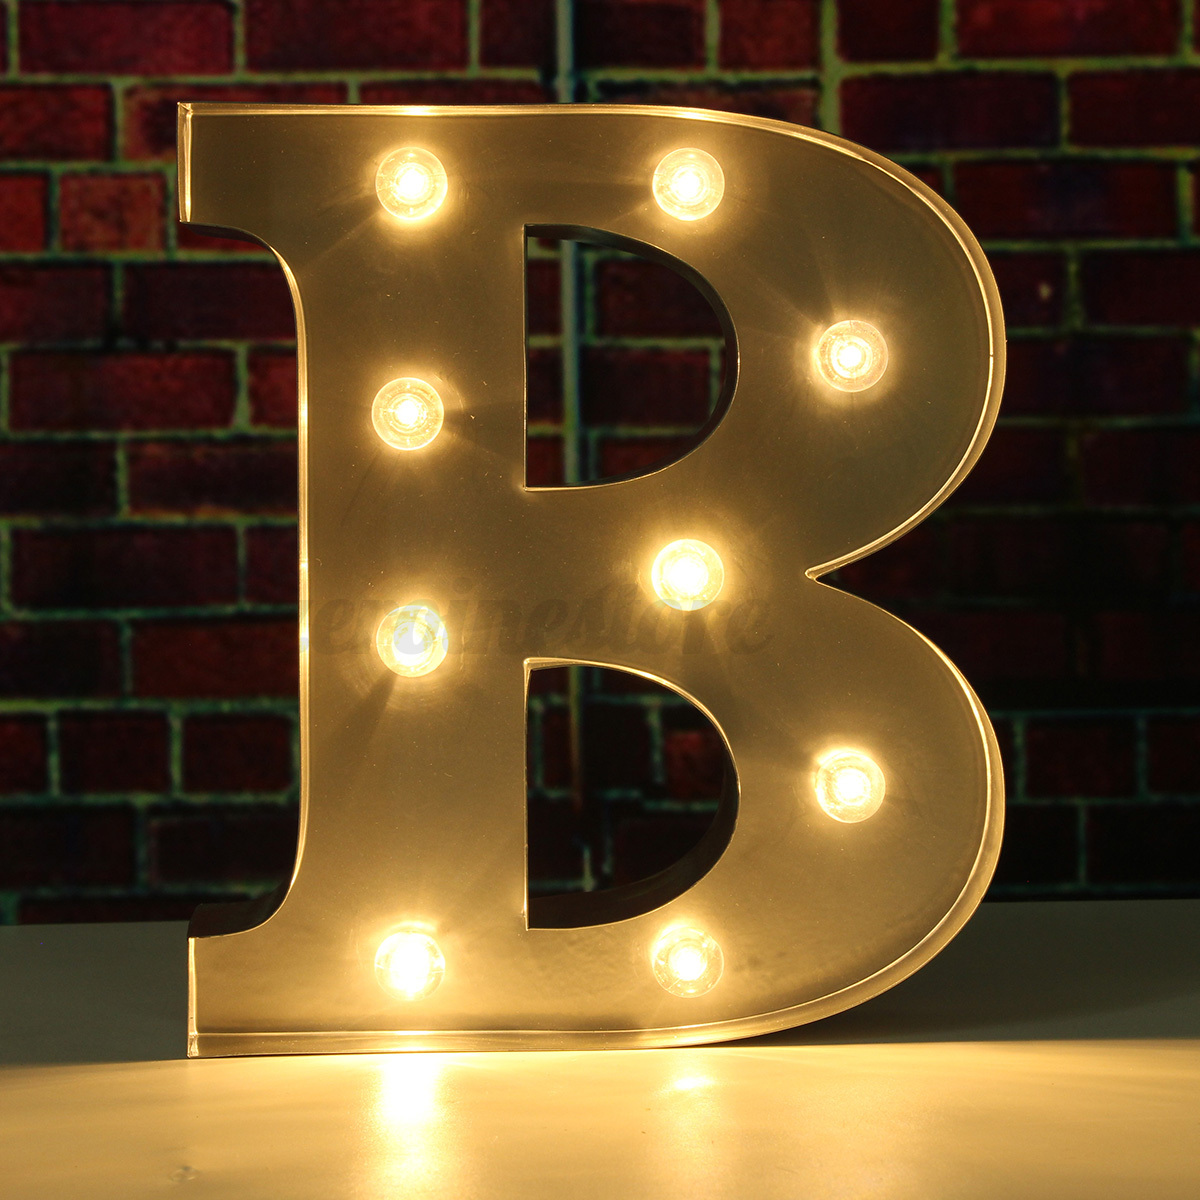 9 metal led marquee letter alphabet light a to m vintage circus